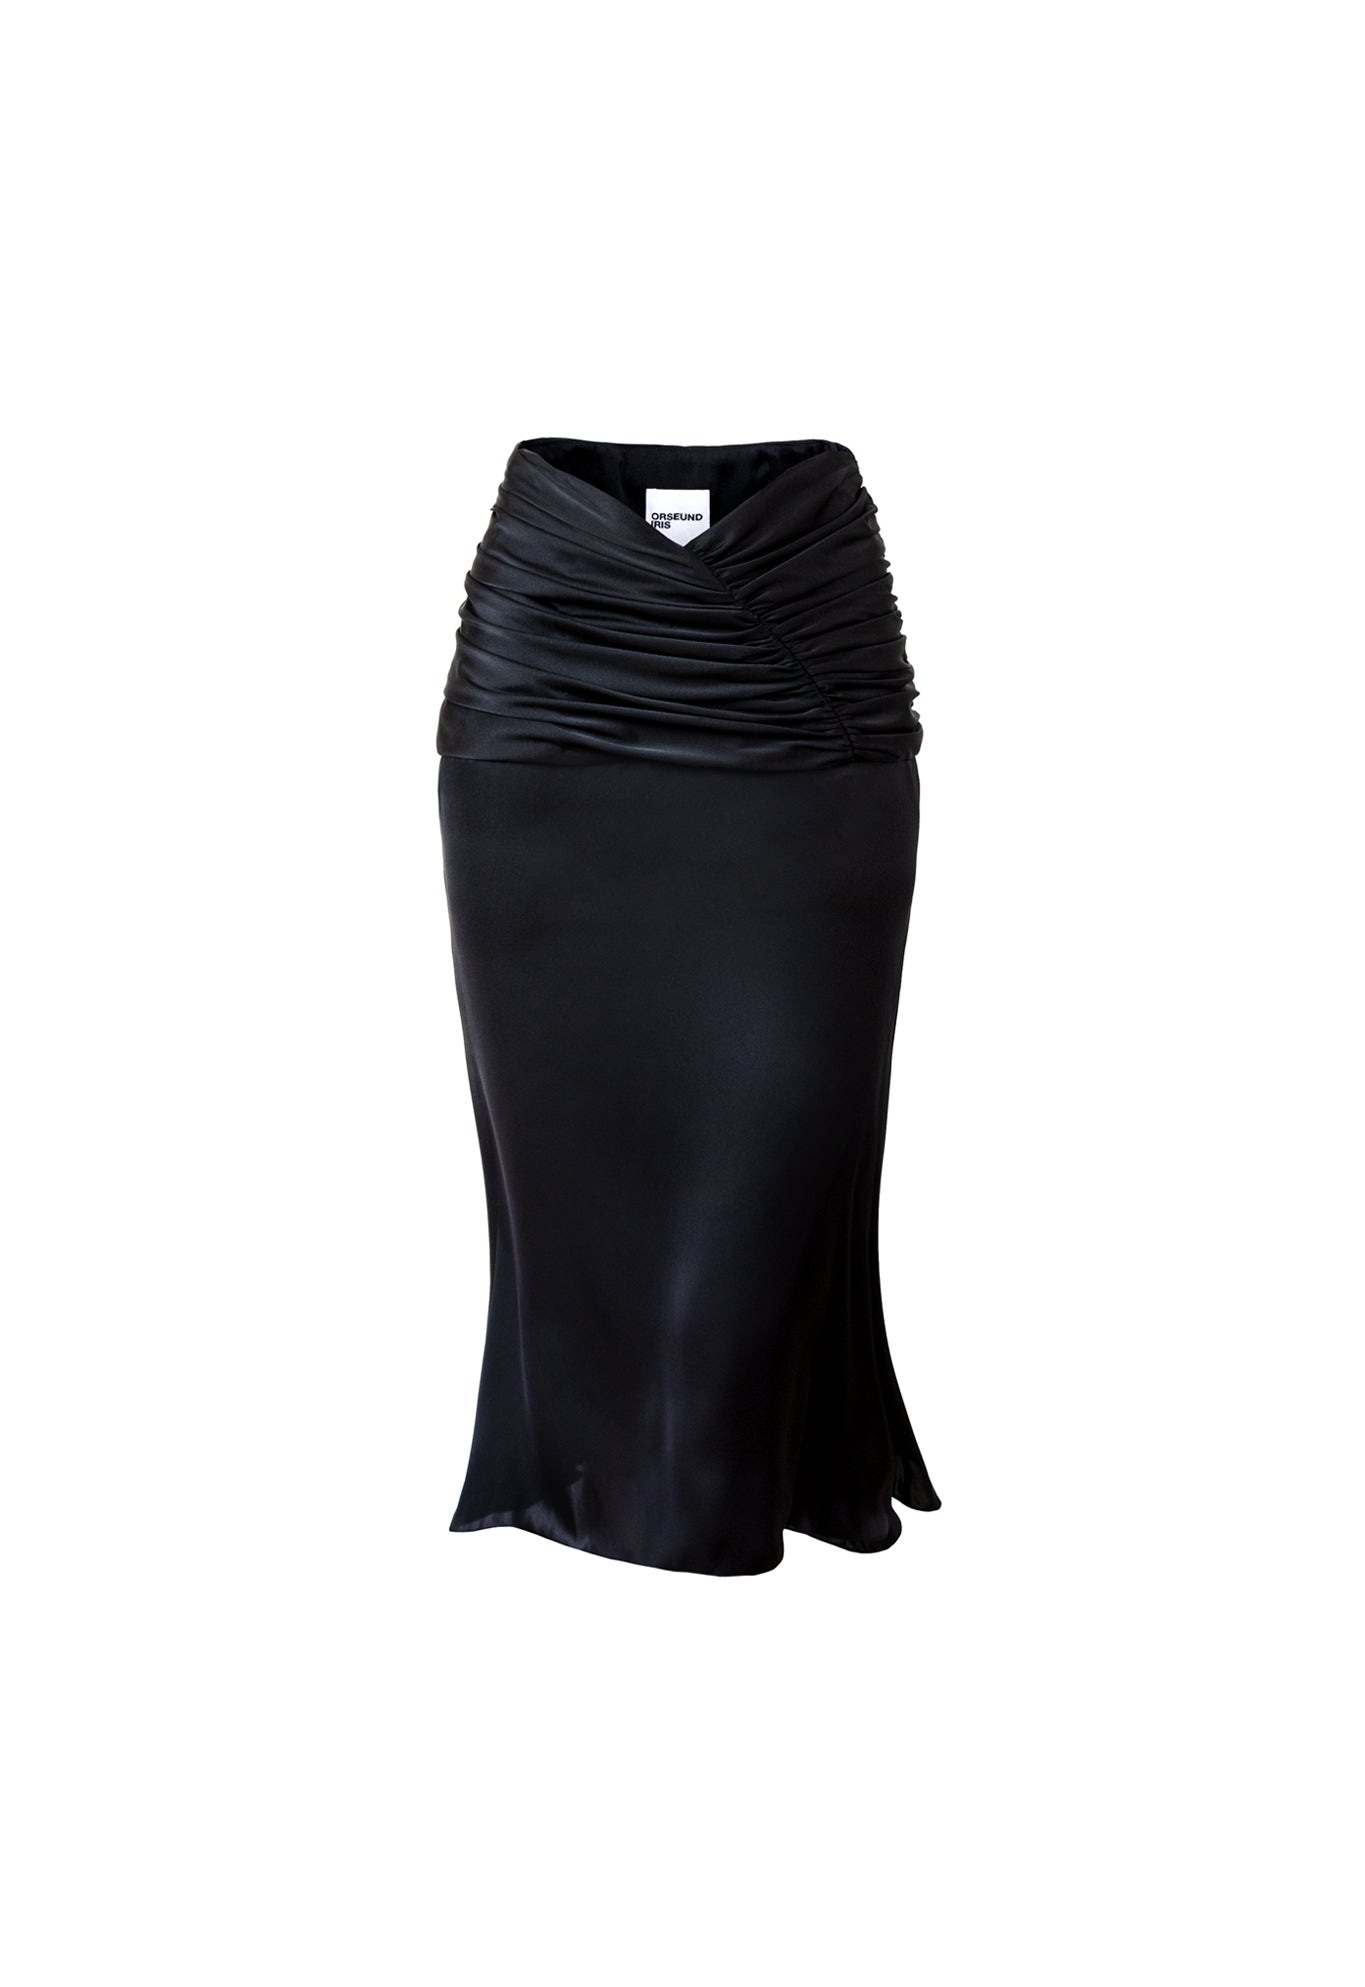 ROMANTIQUE SKIRT BLACK